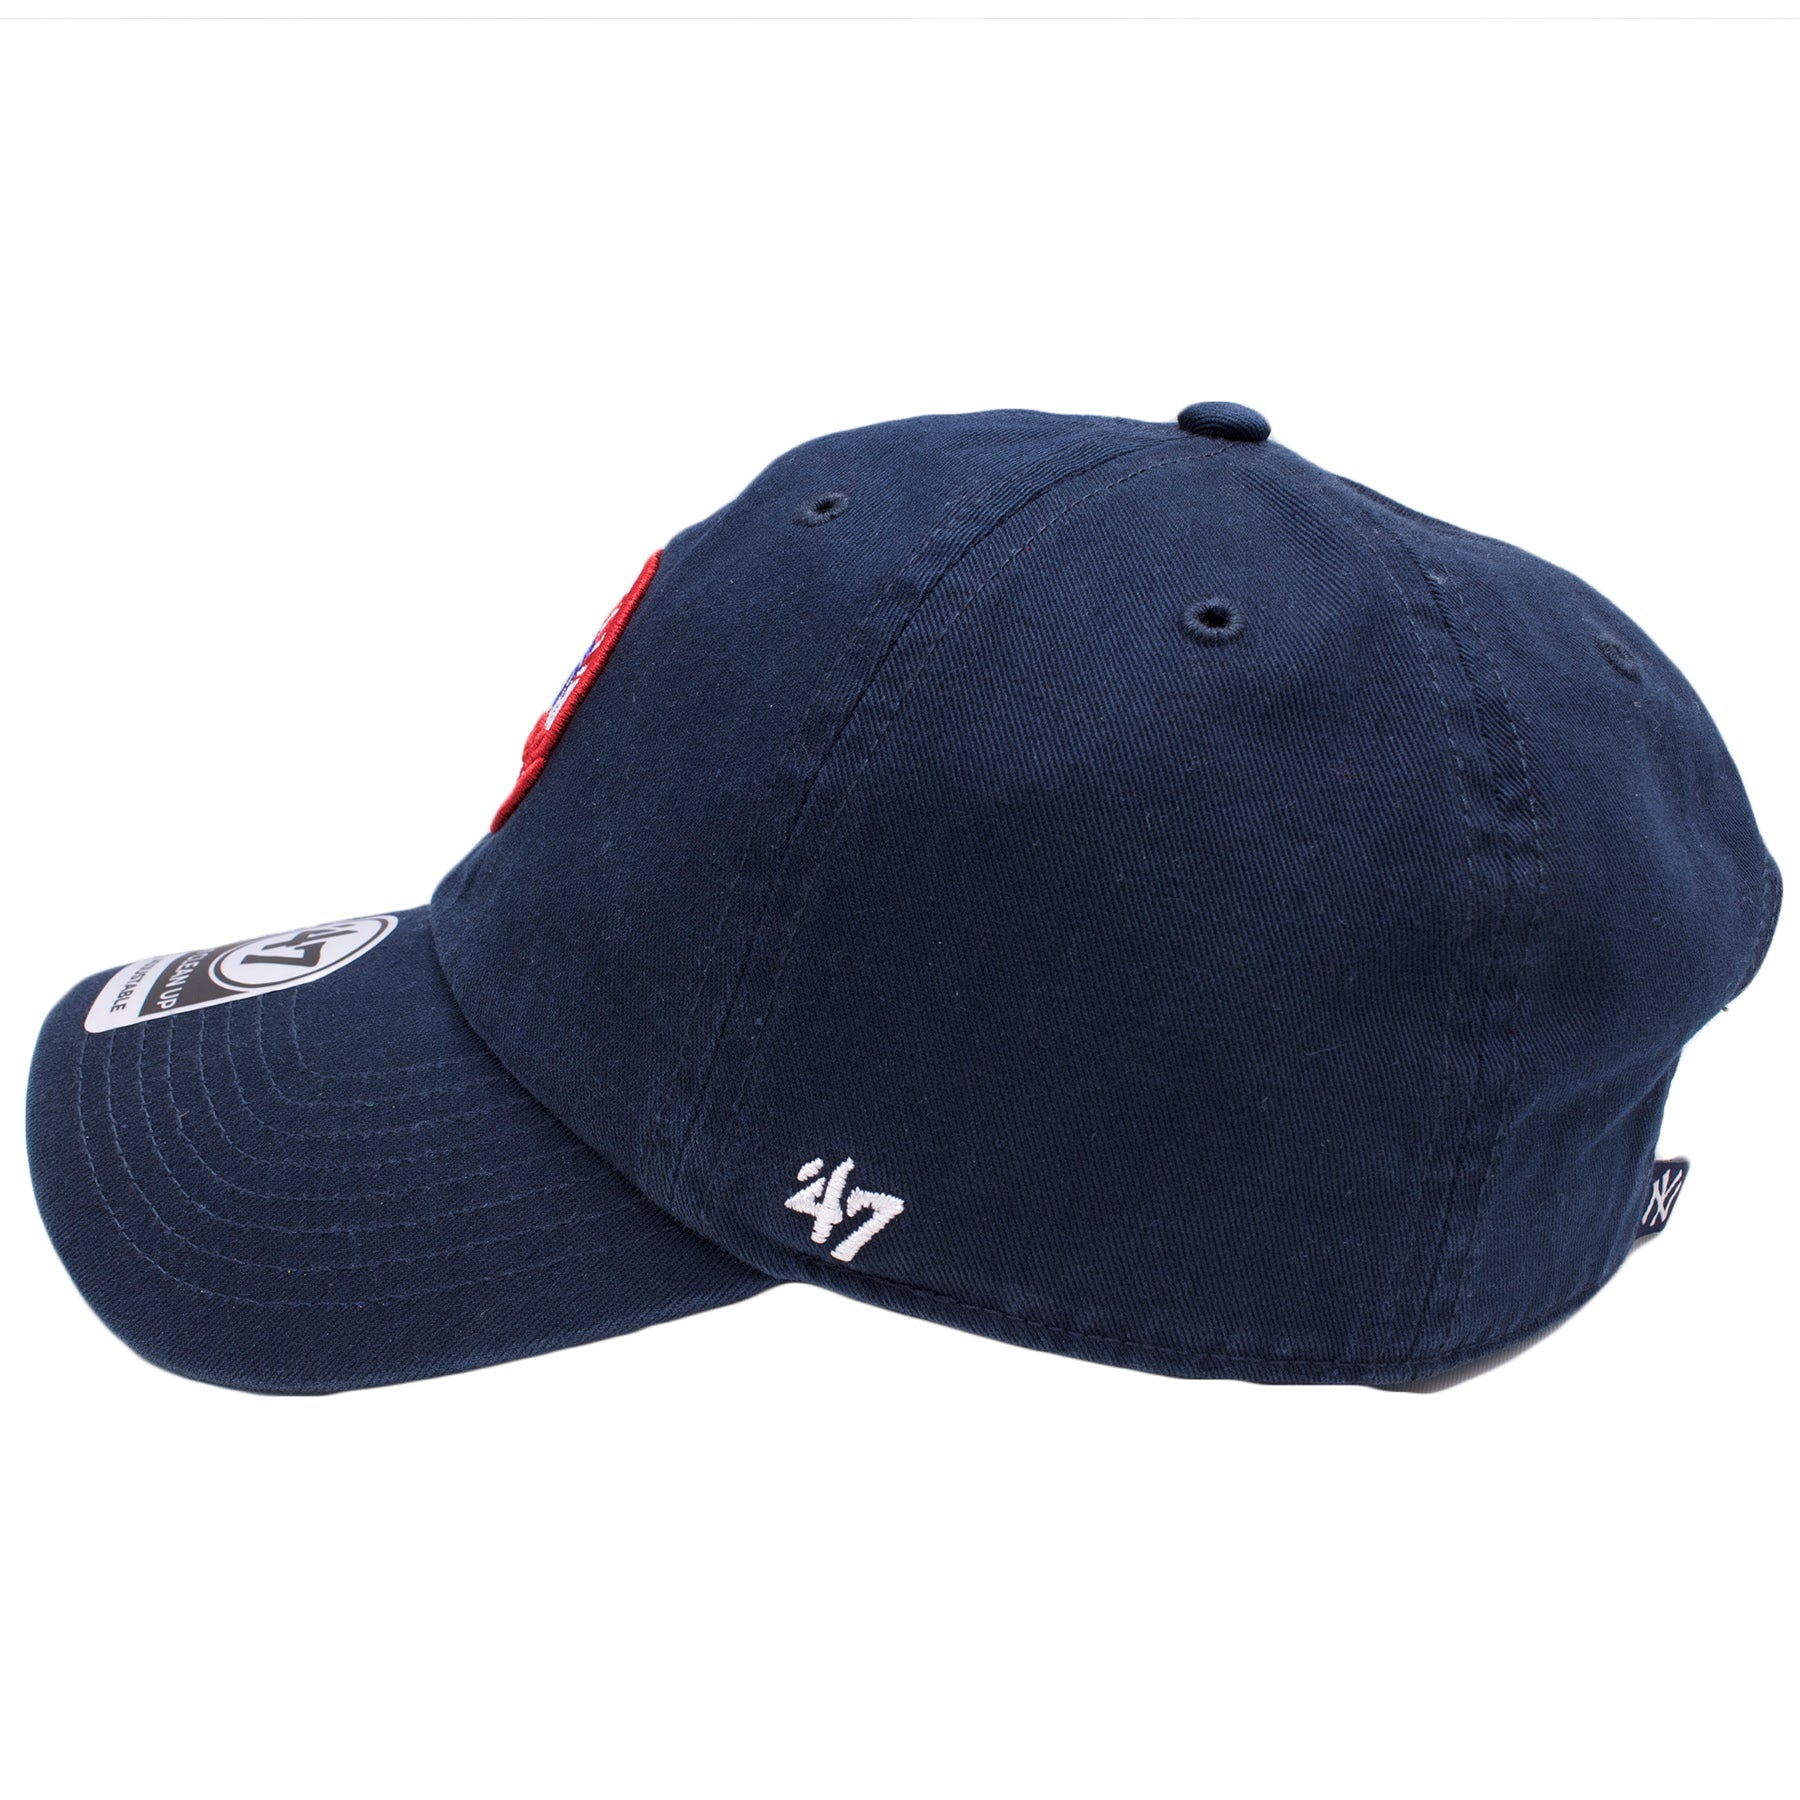 f1cef88b21614 ... on the left side of the new york yankees vintage dad hat there is a  white ...